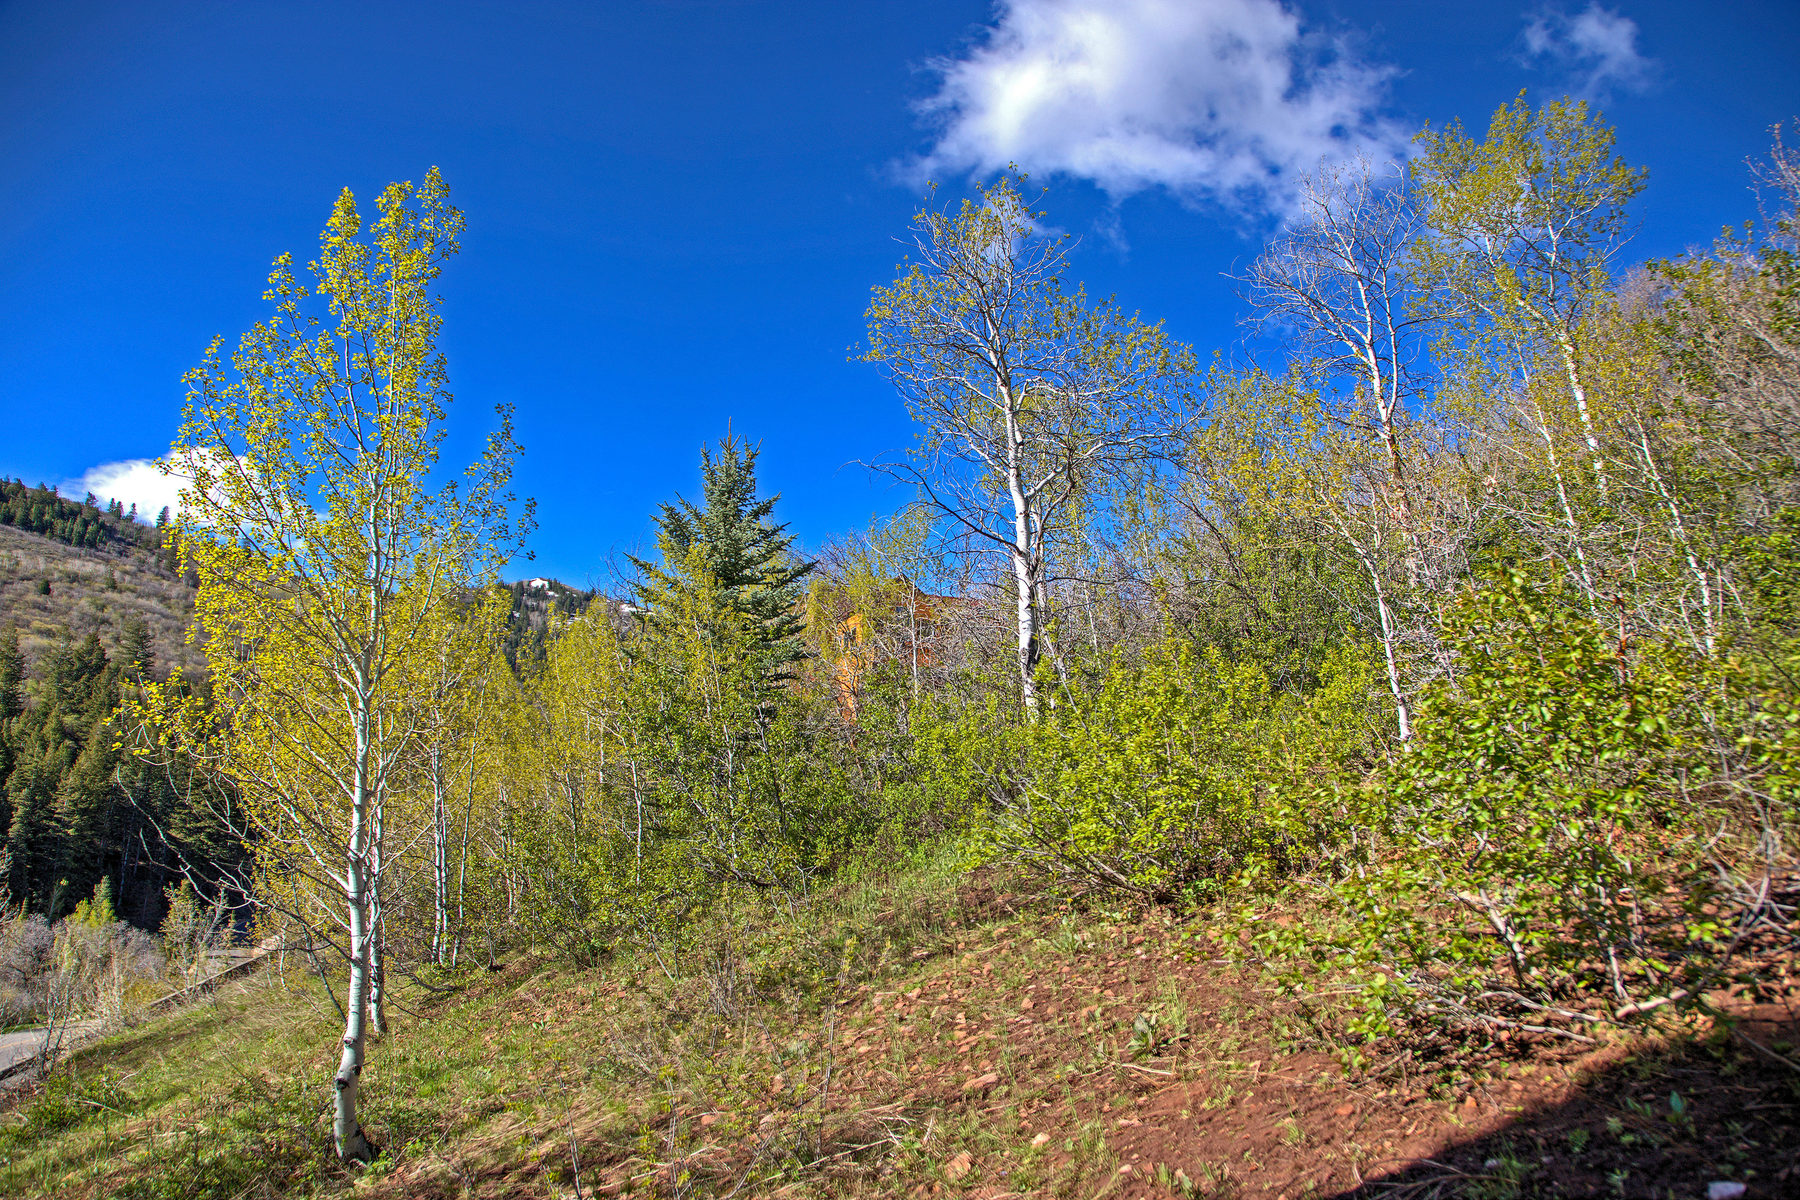 Terreno por un Venta en Uphill Lot With Great Views 7091 N Stagecoach Dr Park City, Utah, 84098 Estados Unidos